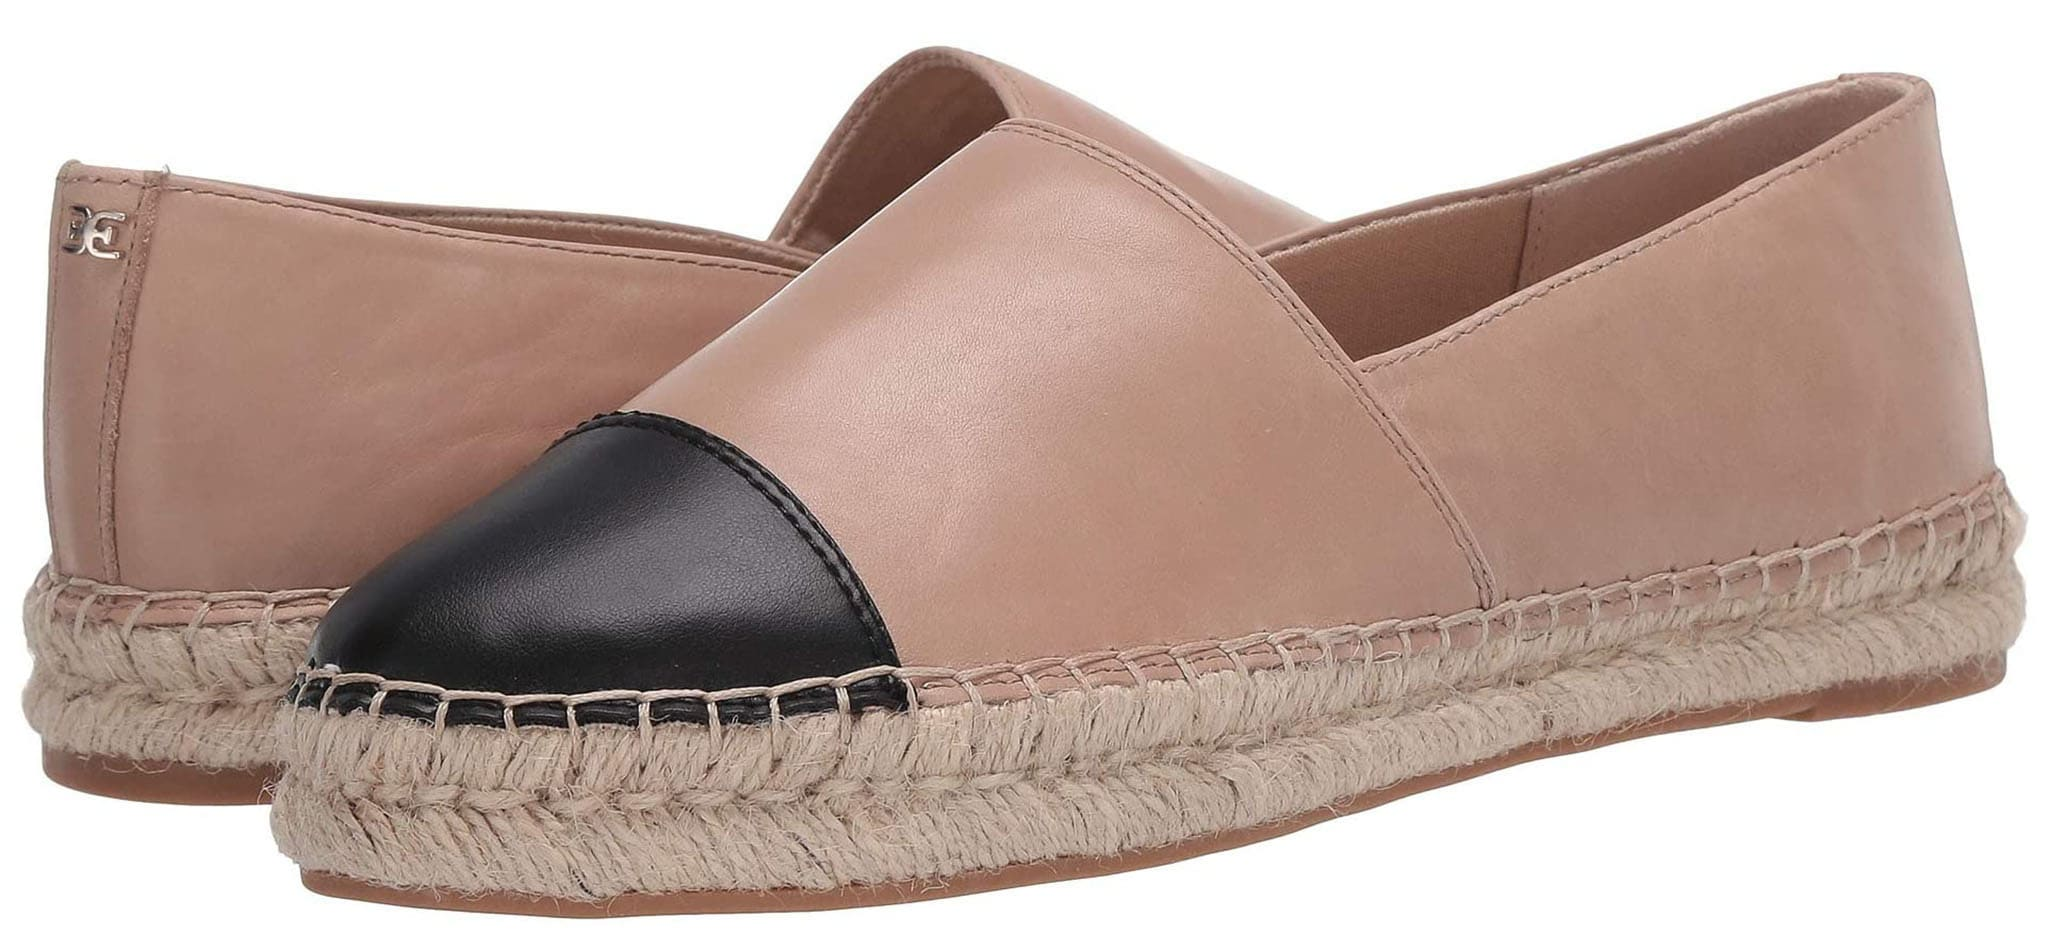 Rest your feet and swap your heels for espadrille flats like the Sam Edelman Krissy